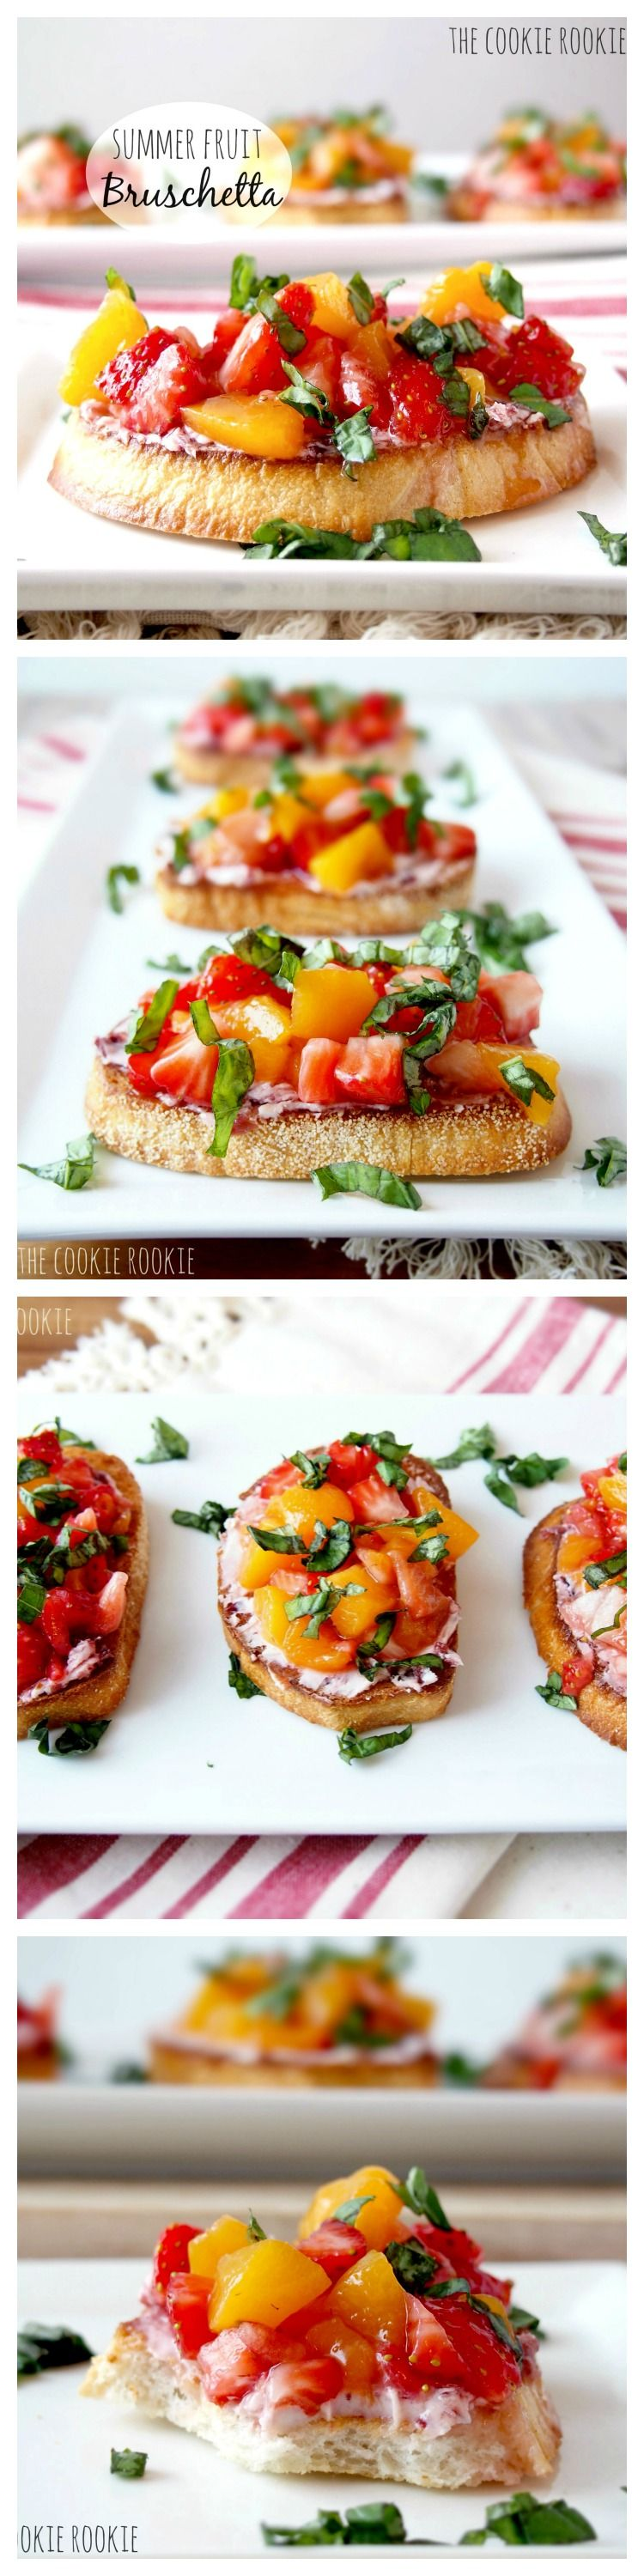 Summer Fruit Bruschetta {The Cookie Rookie}